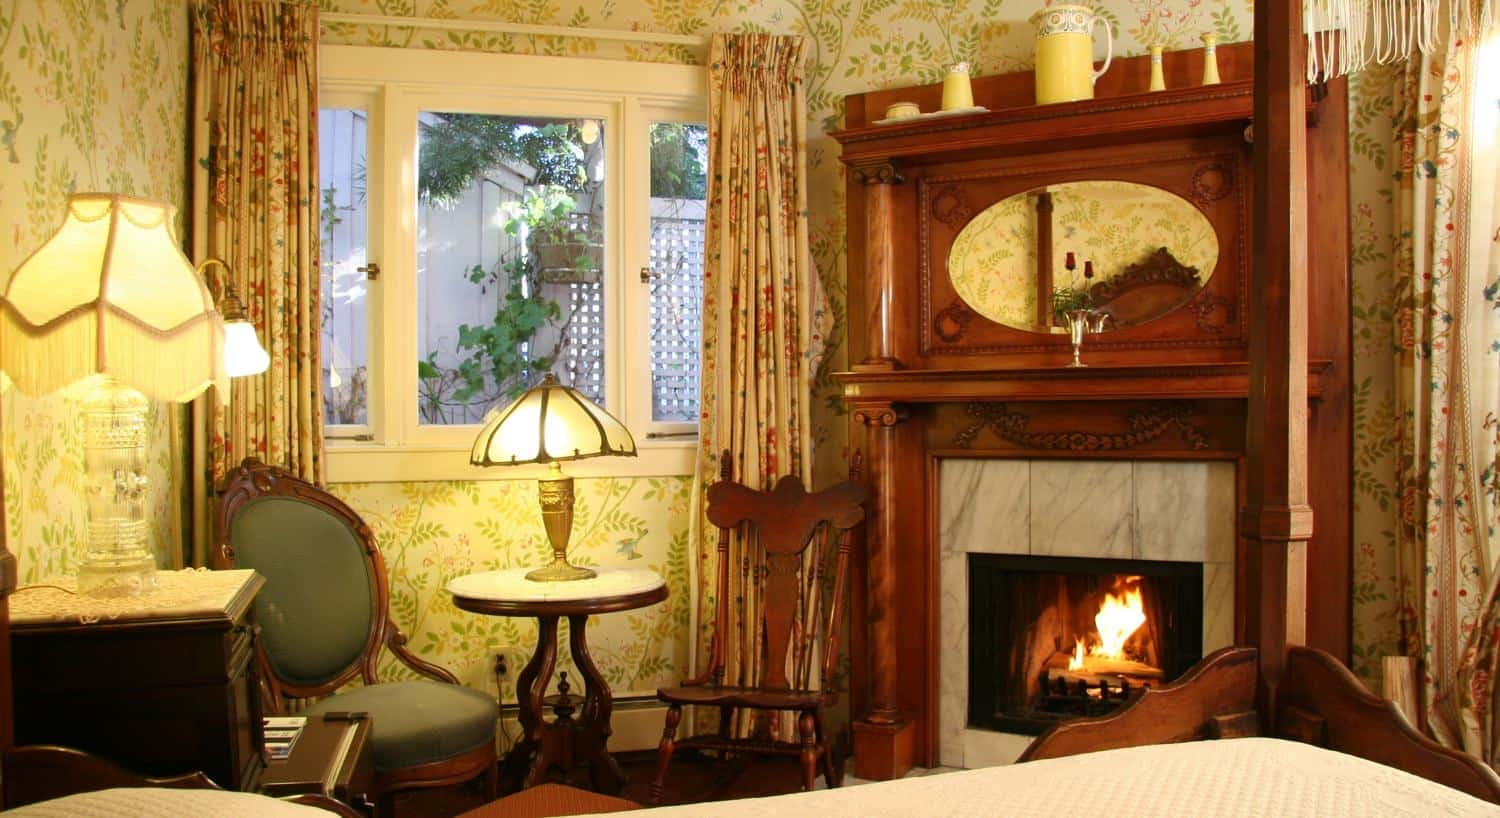 Garden guest room with leafy printed wallpaper, corner fireplace with surrounding wood mantel and triple window